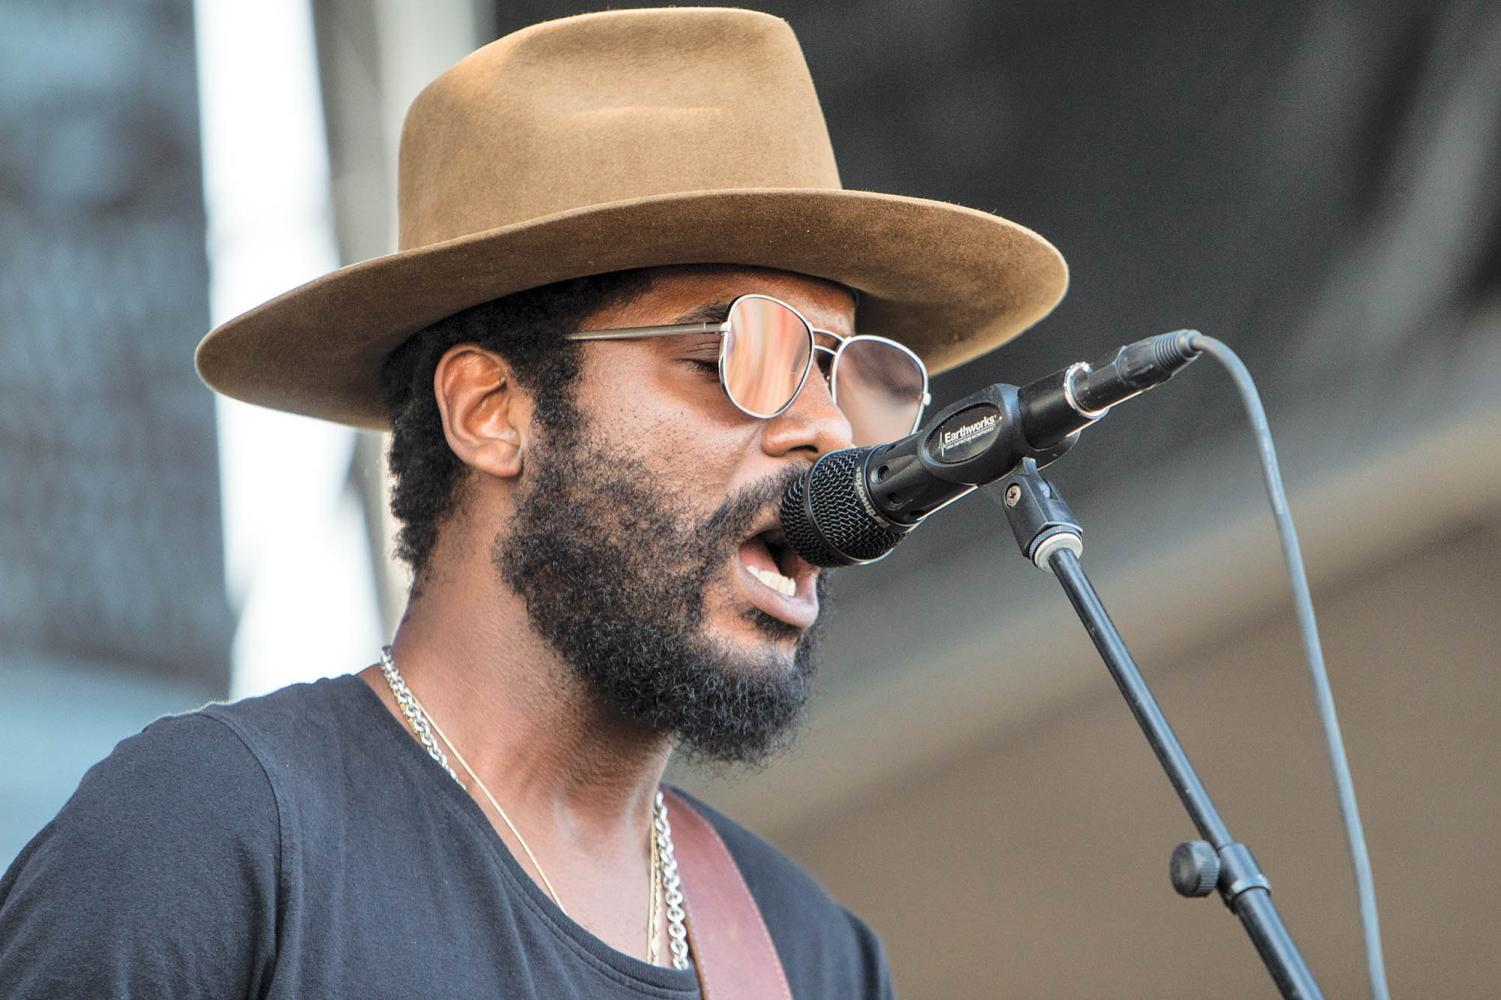 'This Land' features two bonus tracks on which Gary Clark Jr. jams on the guitar.